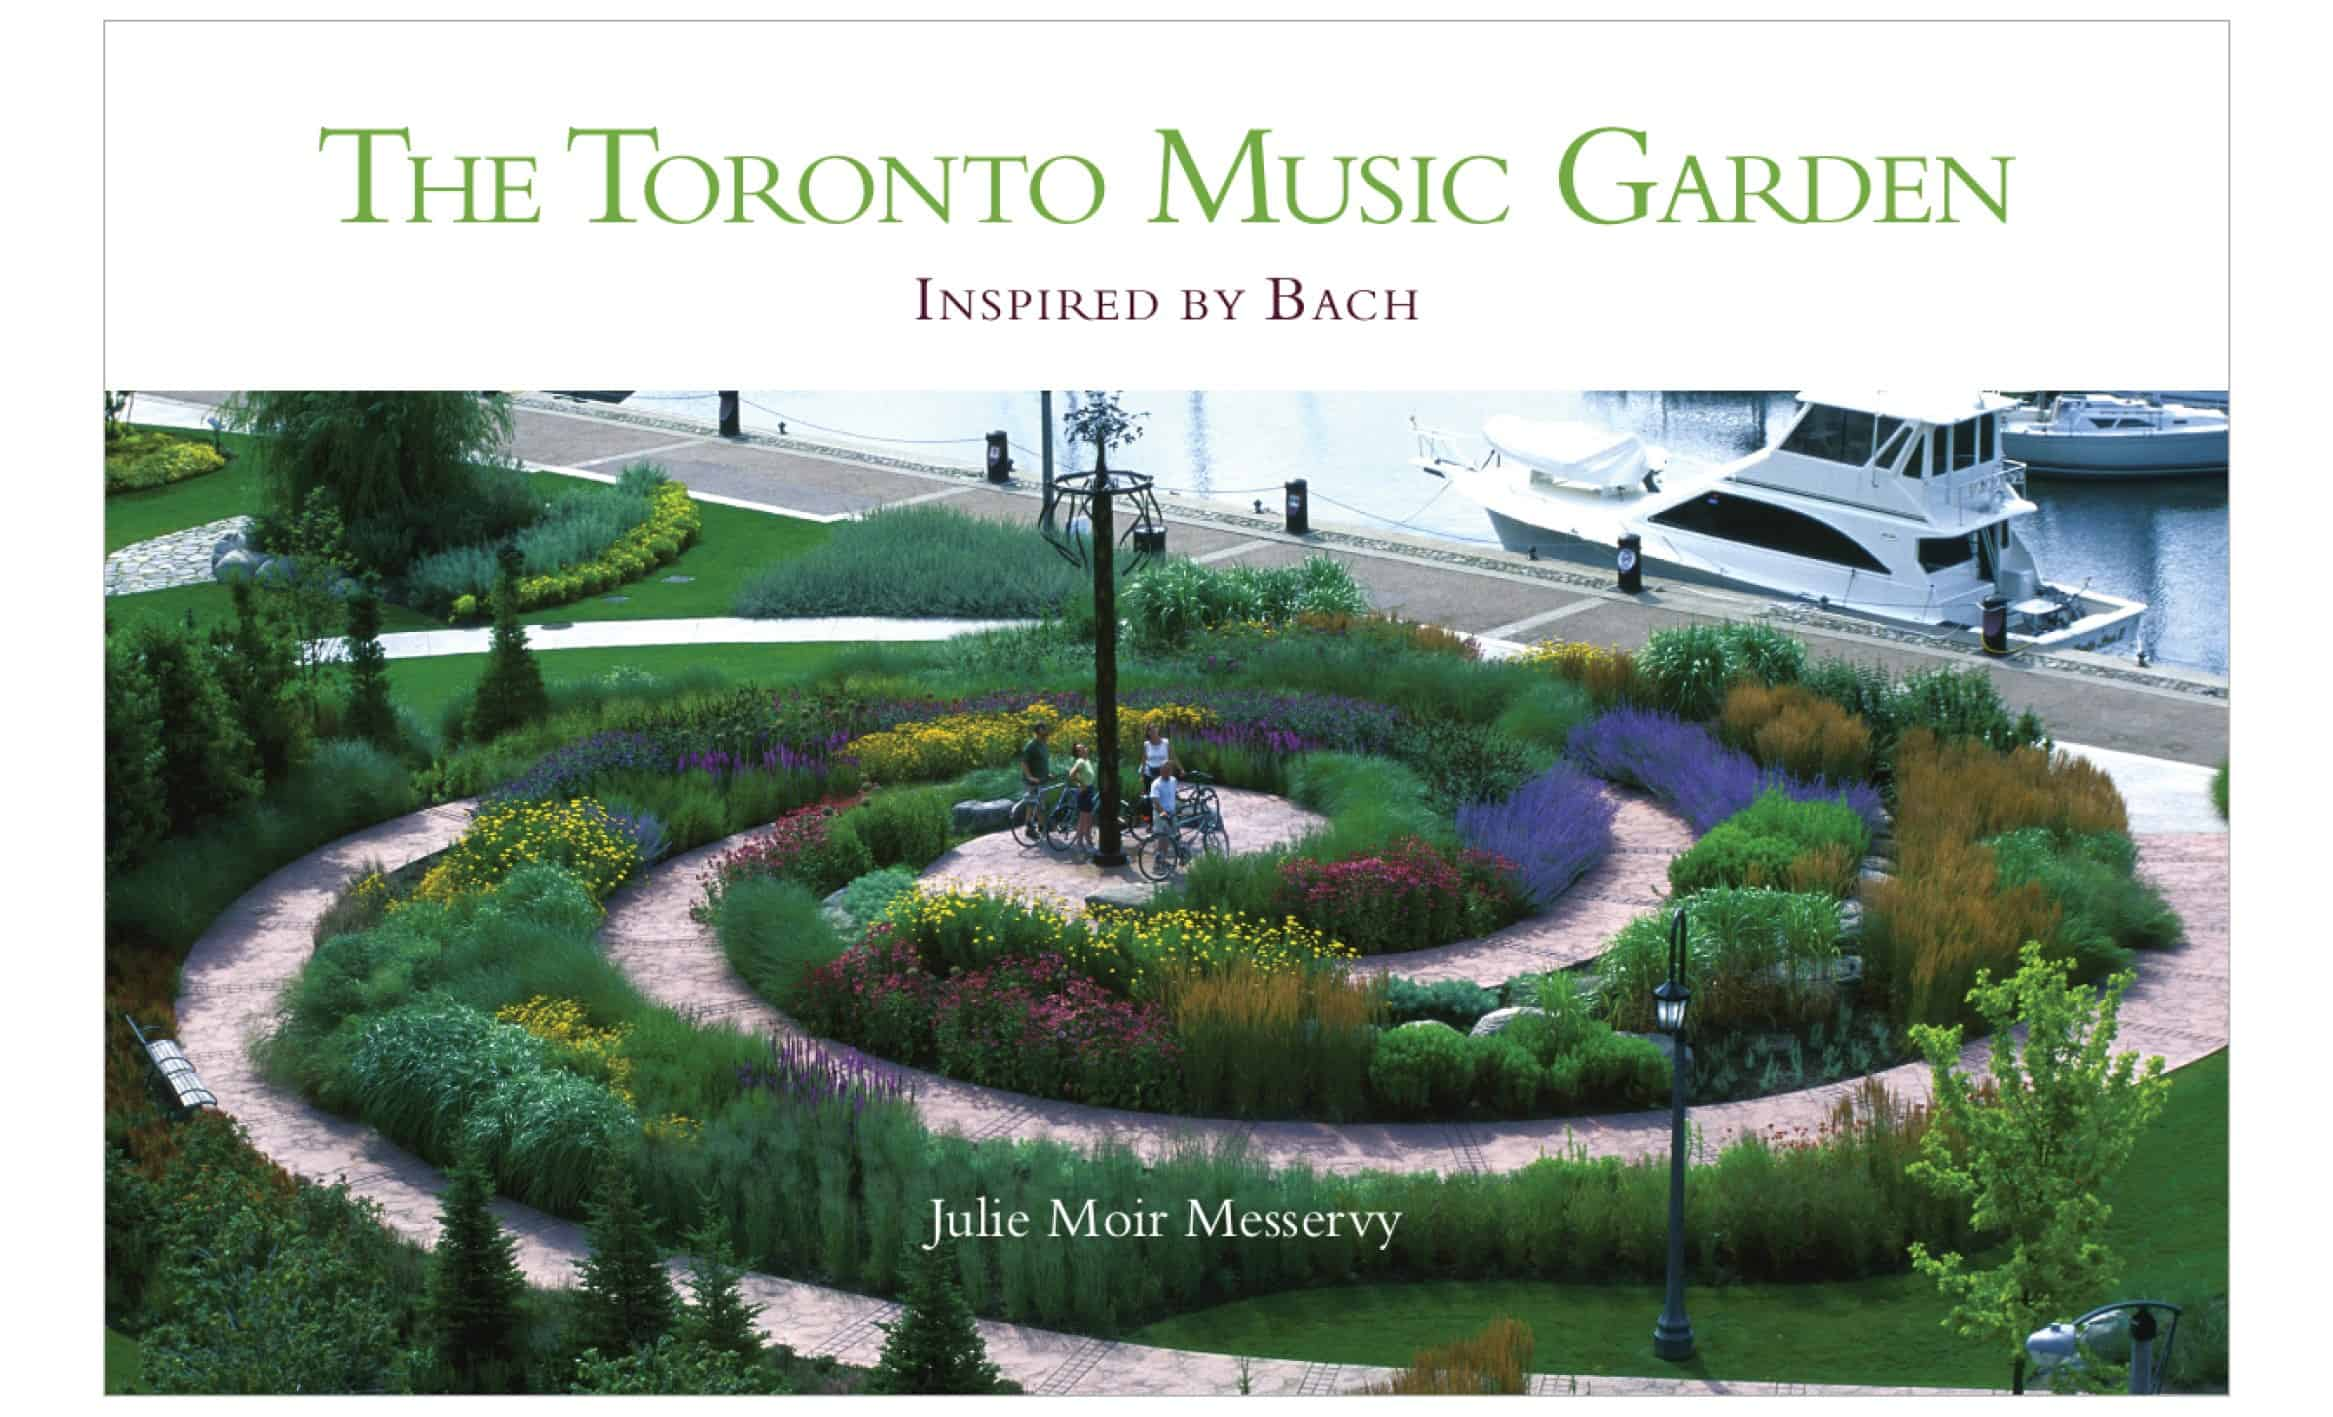 Julie moir messervy design studio the toronto music garden for The garden studio